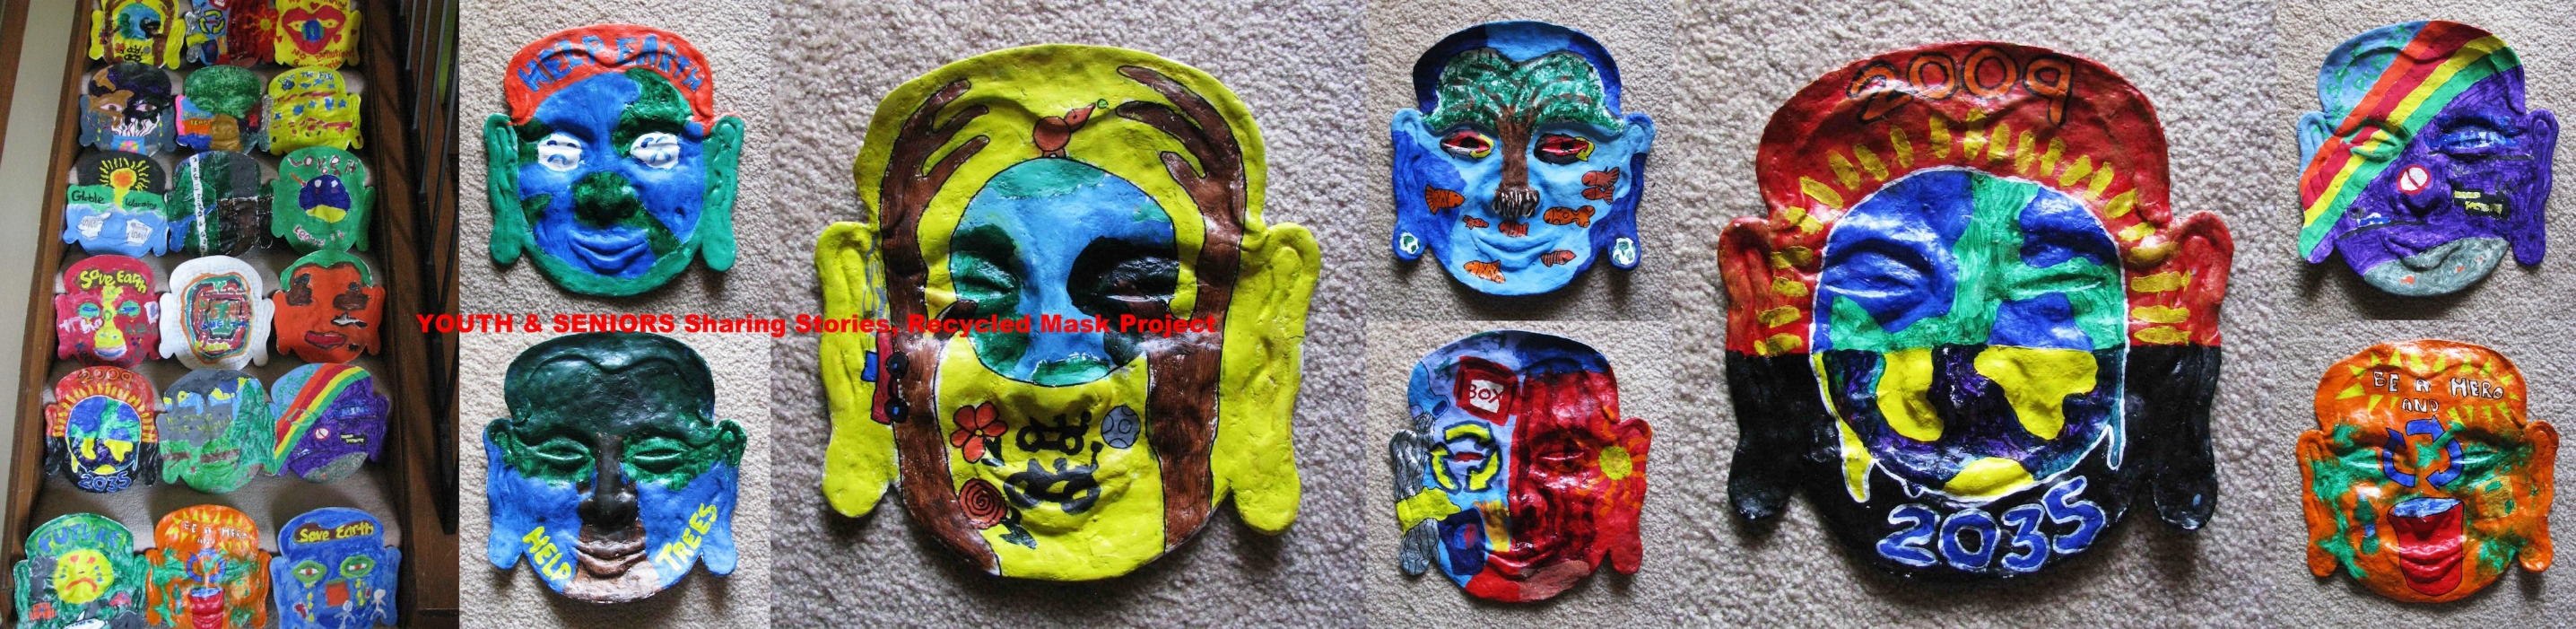 http://erikotsogo.com/files/gimgs/th-427_Youth & Seniors Sharing Stories, Recycled Mask Project 2 (SMALLER)_v3.jpg